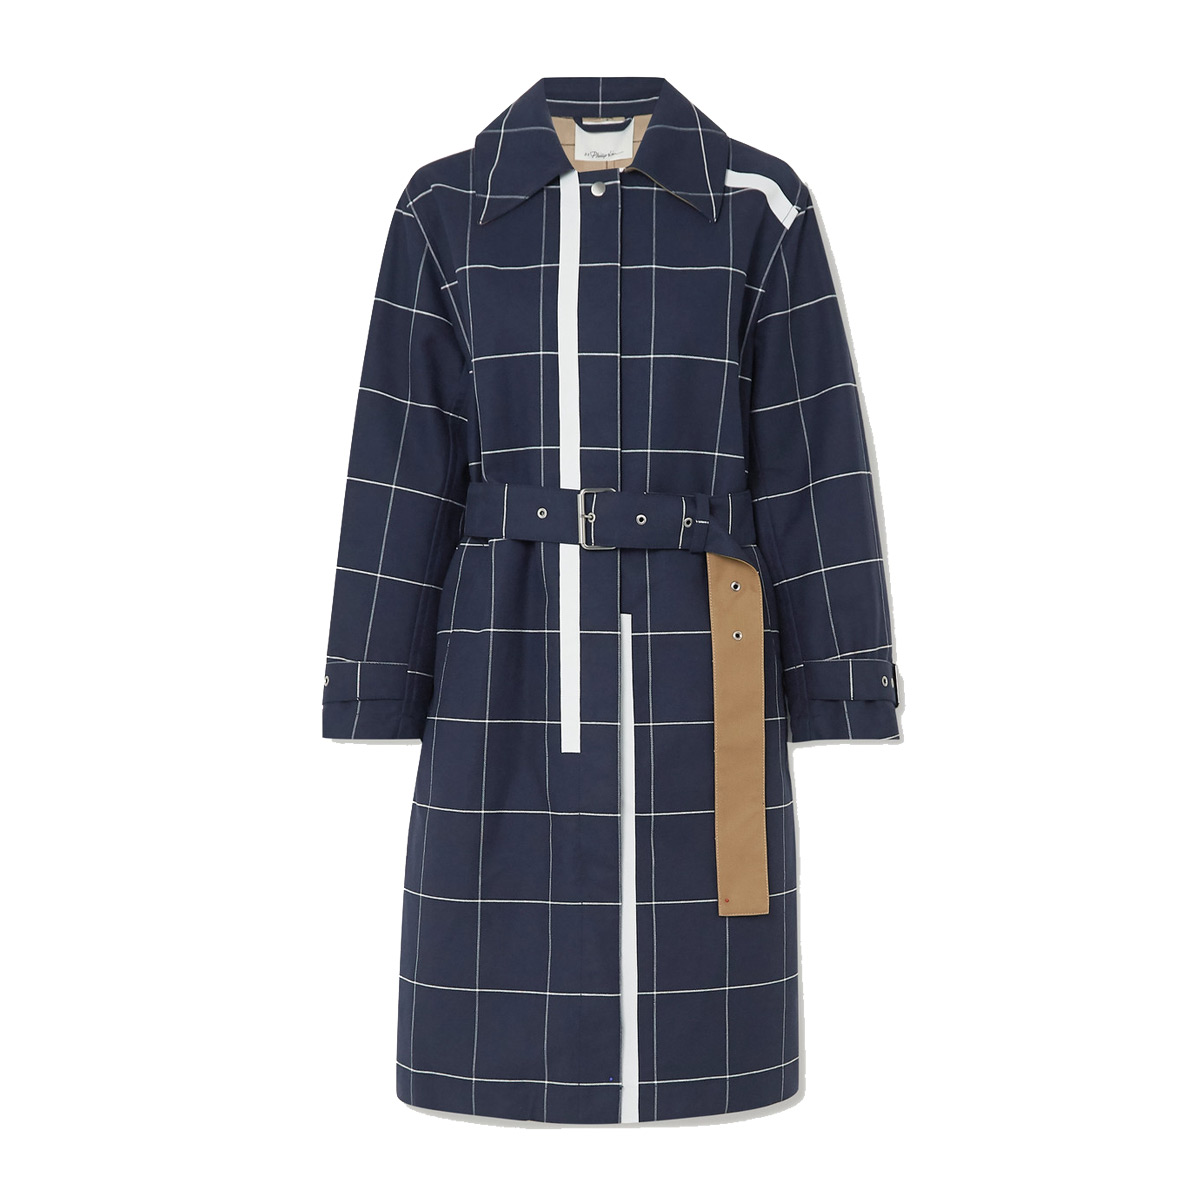 3 1 phillip lim belted checked cotton blend garbadine trench coat